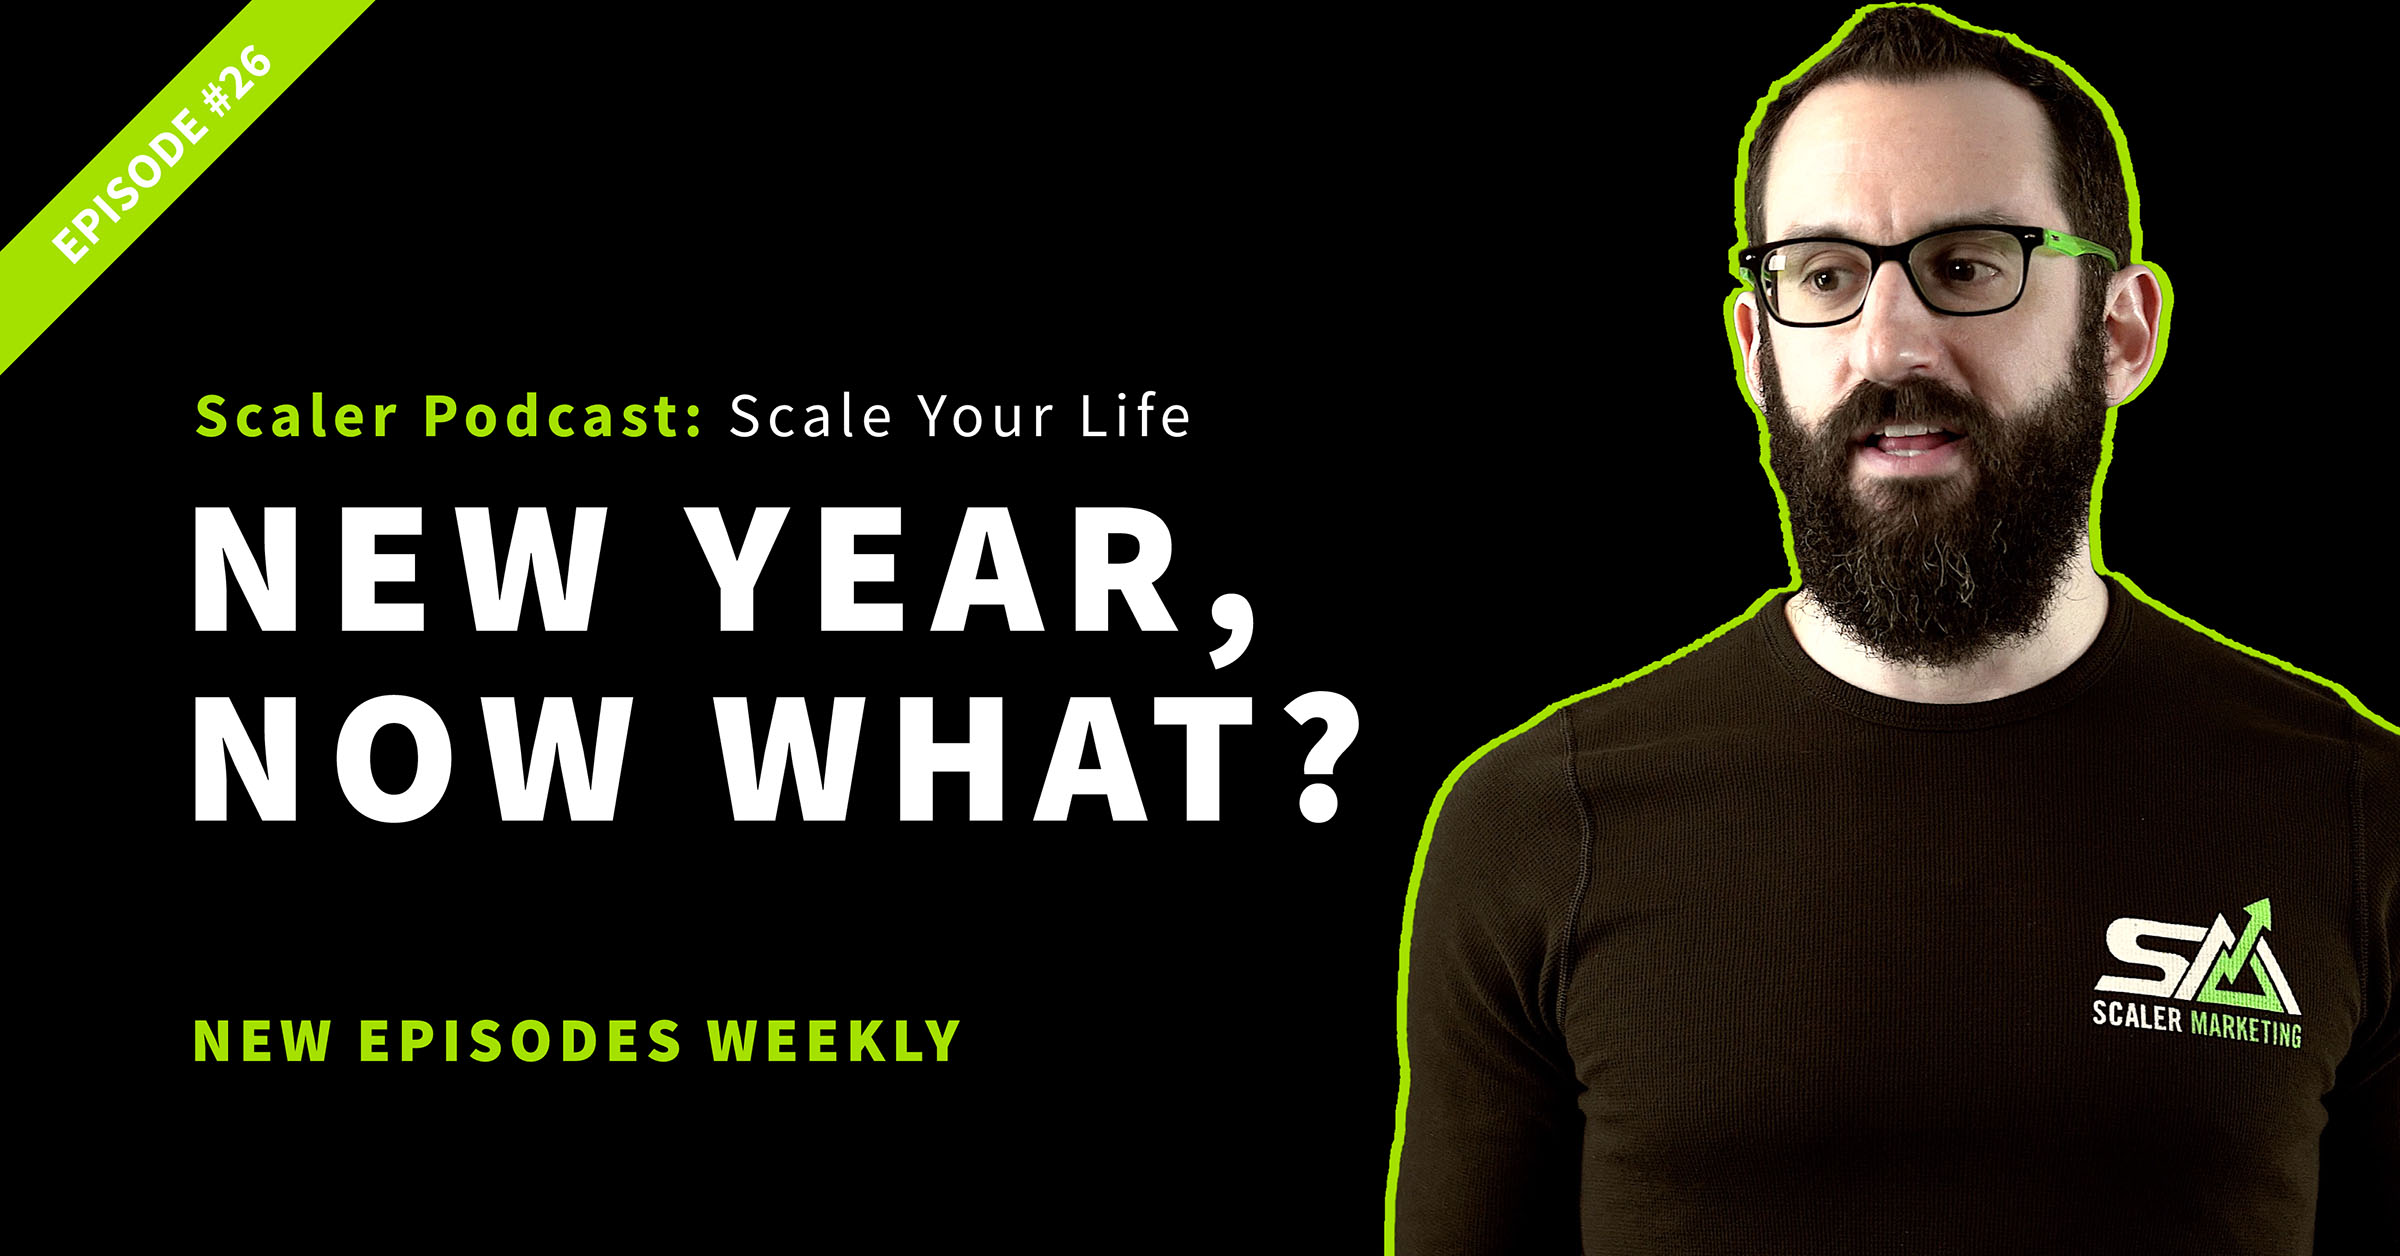 Episode 26 - New Year, Now What?